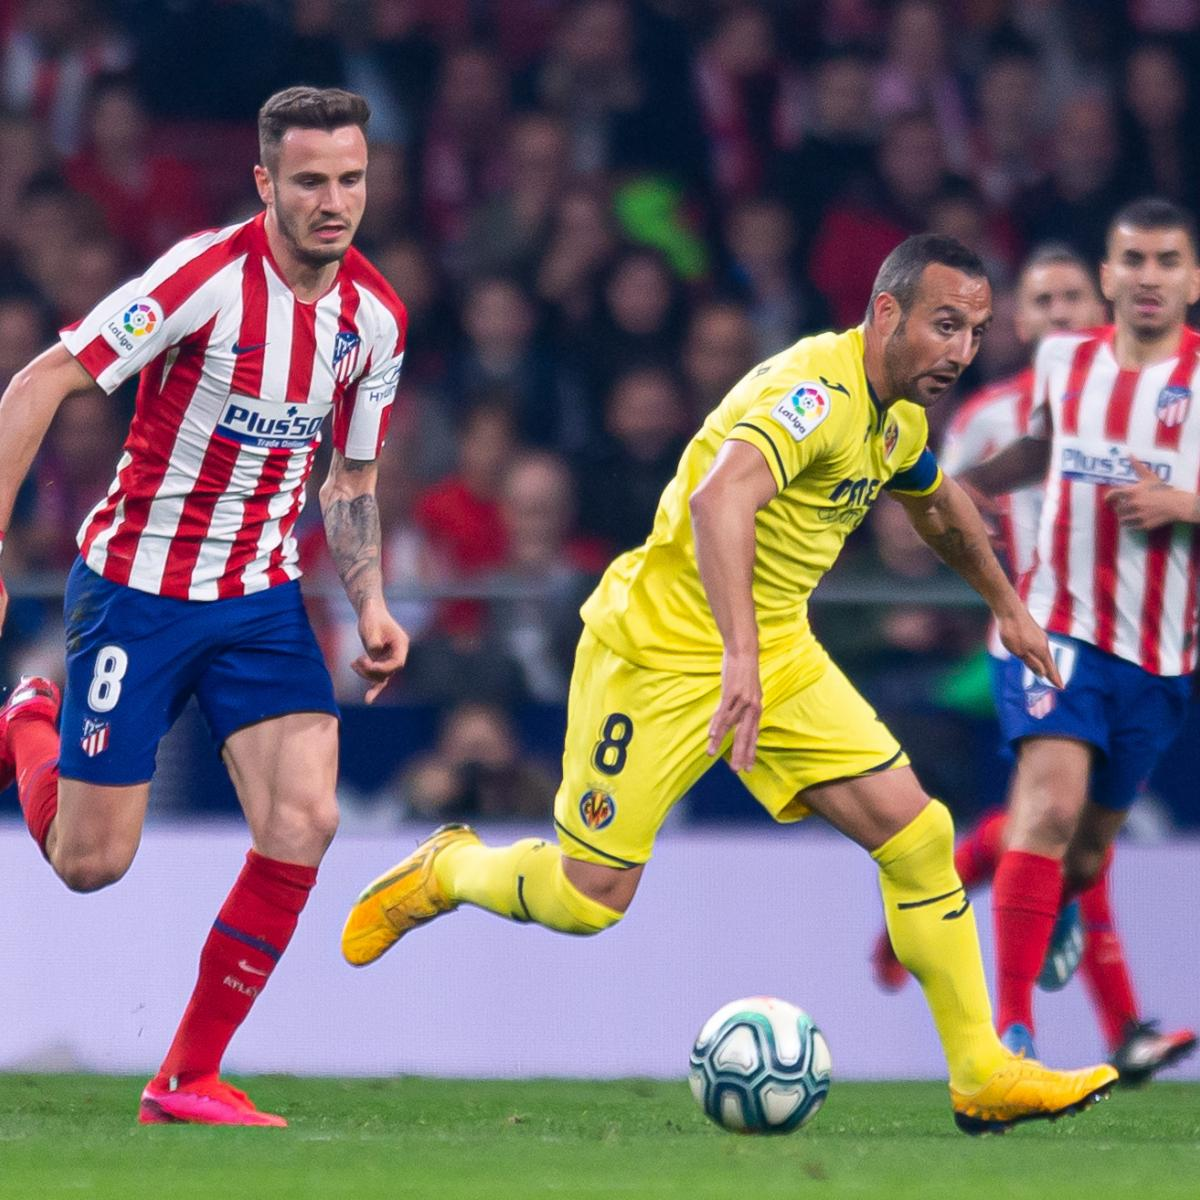 La Liga Table 2020: Sunday's Week 25 Results and Updated Standings